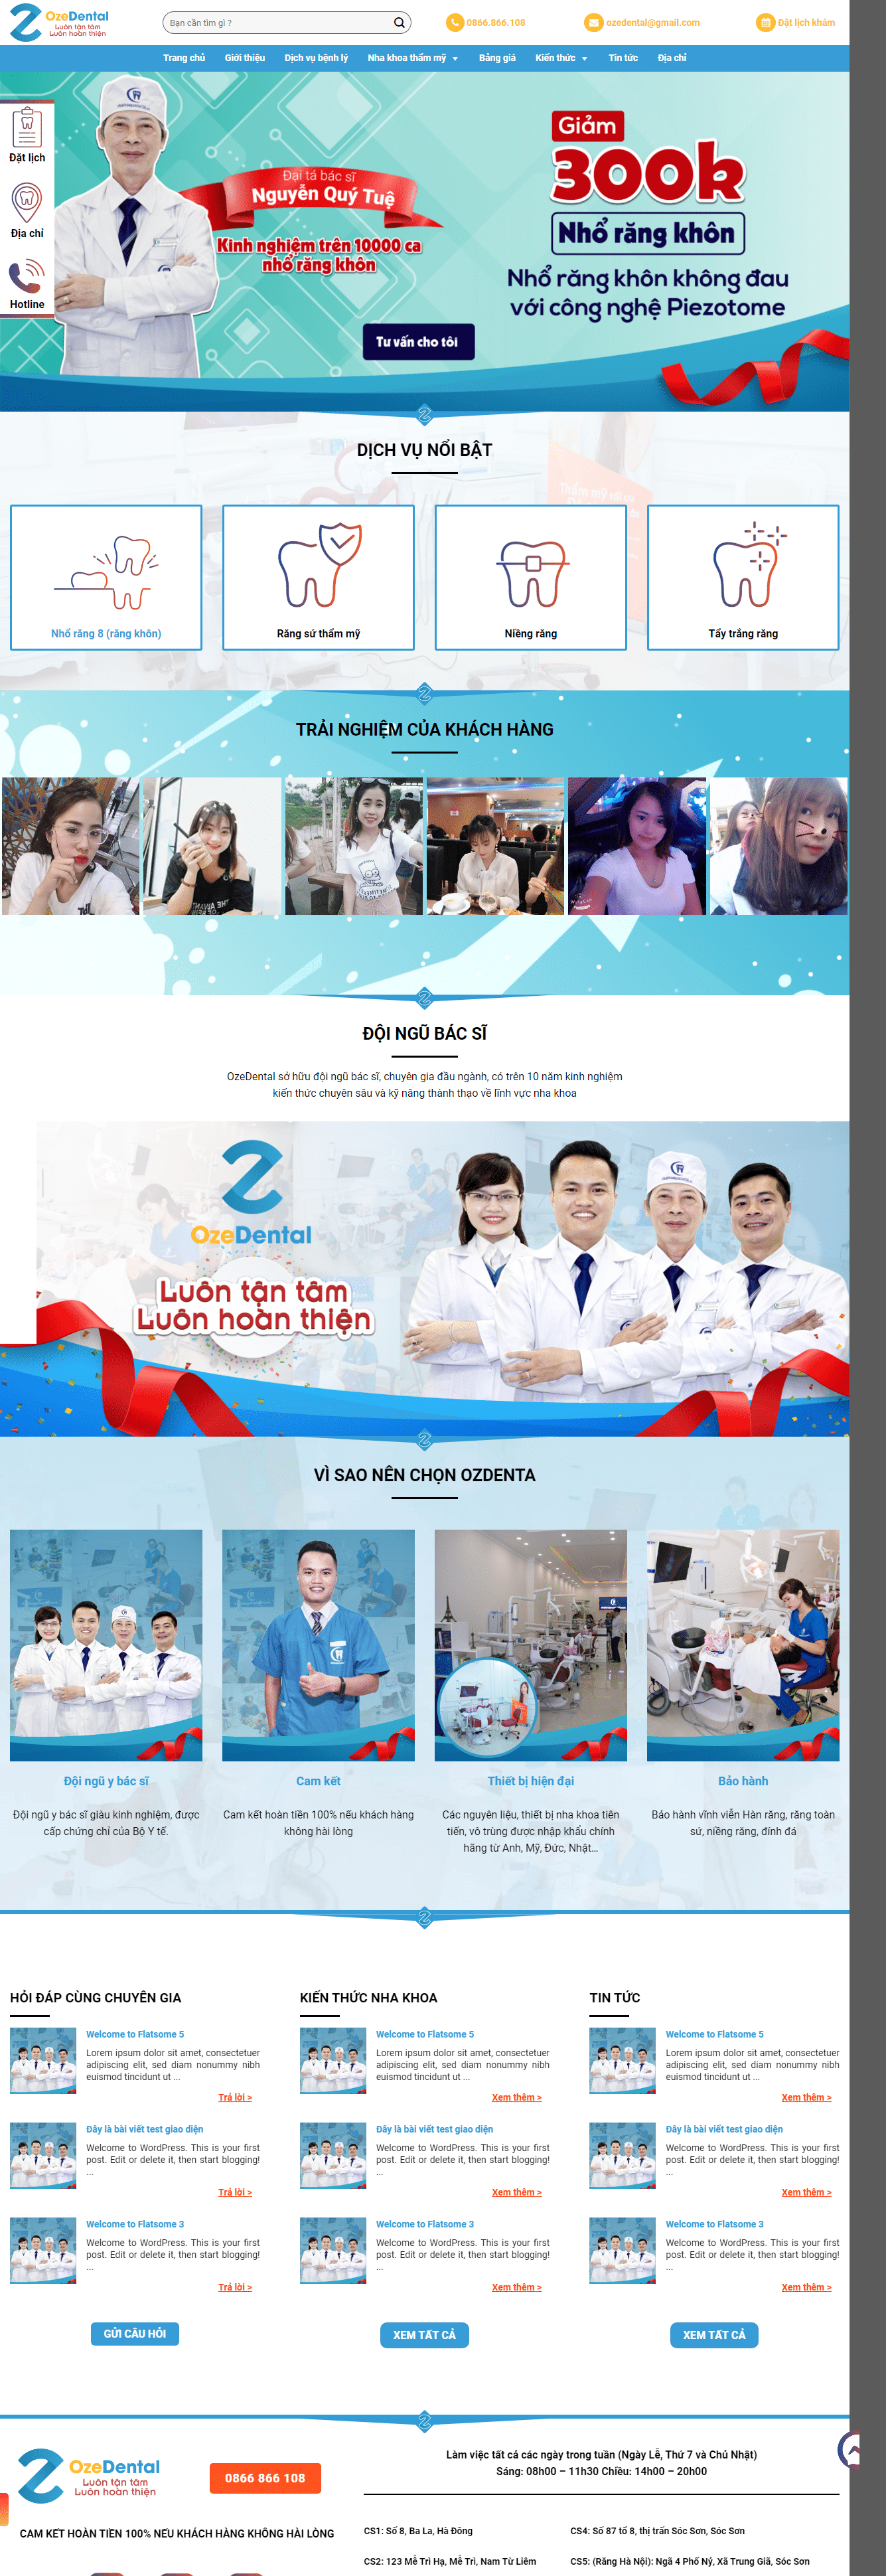 ozdental